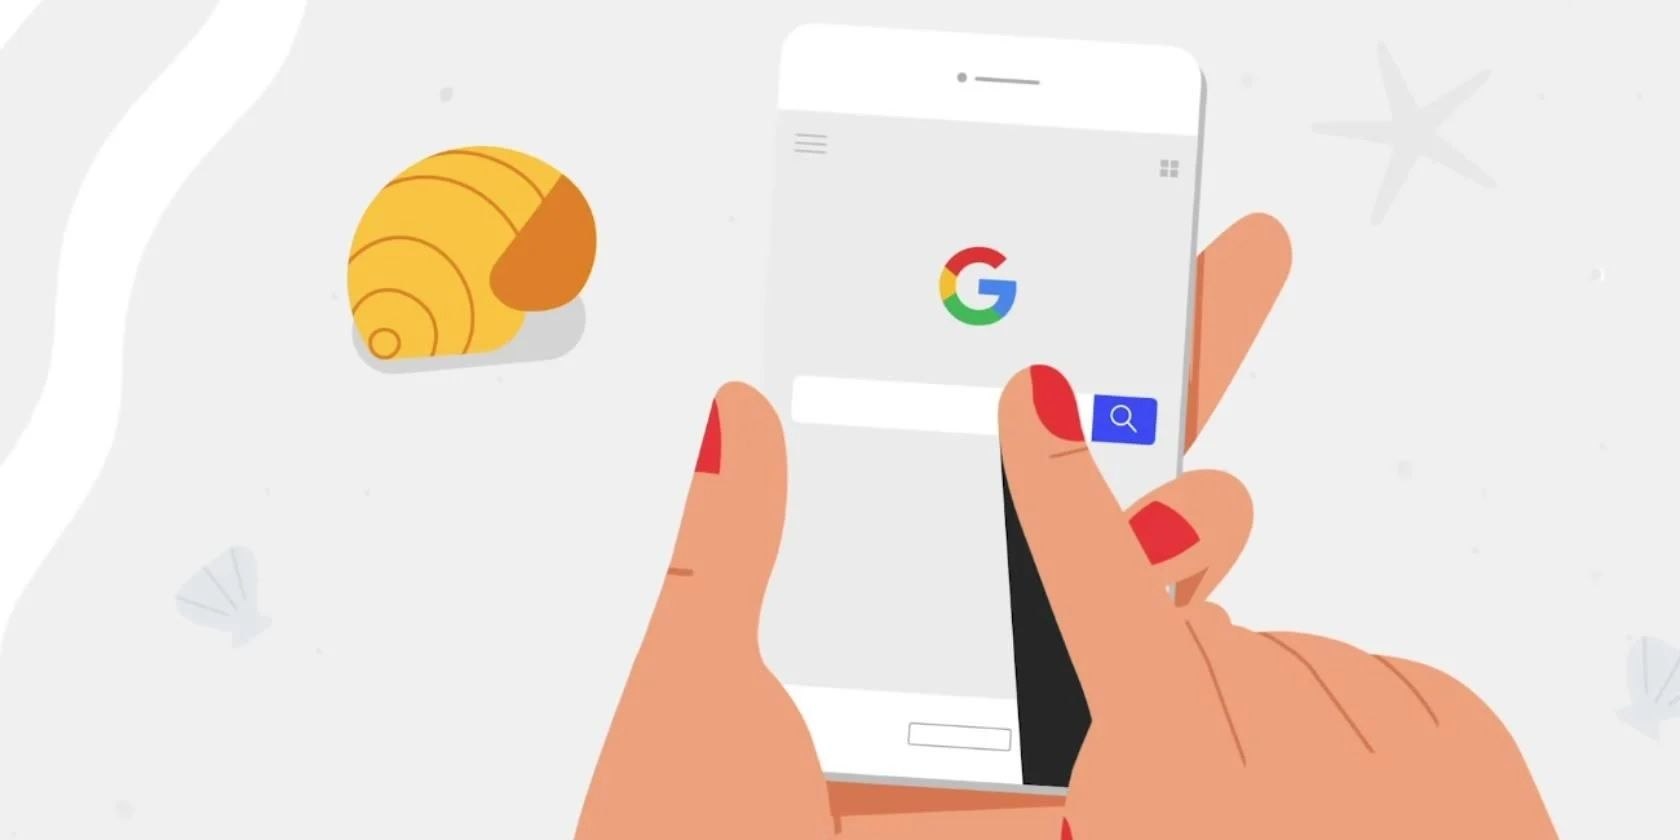 How to Access Your Google History and Delete All Activity